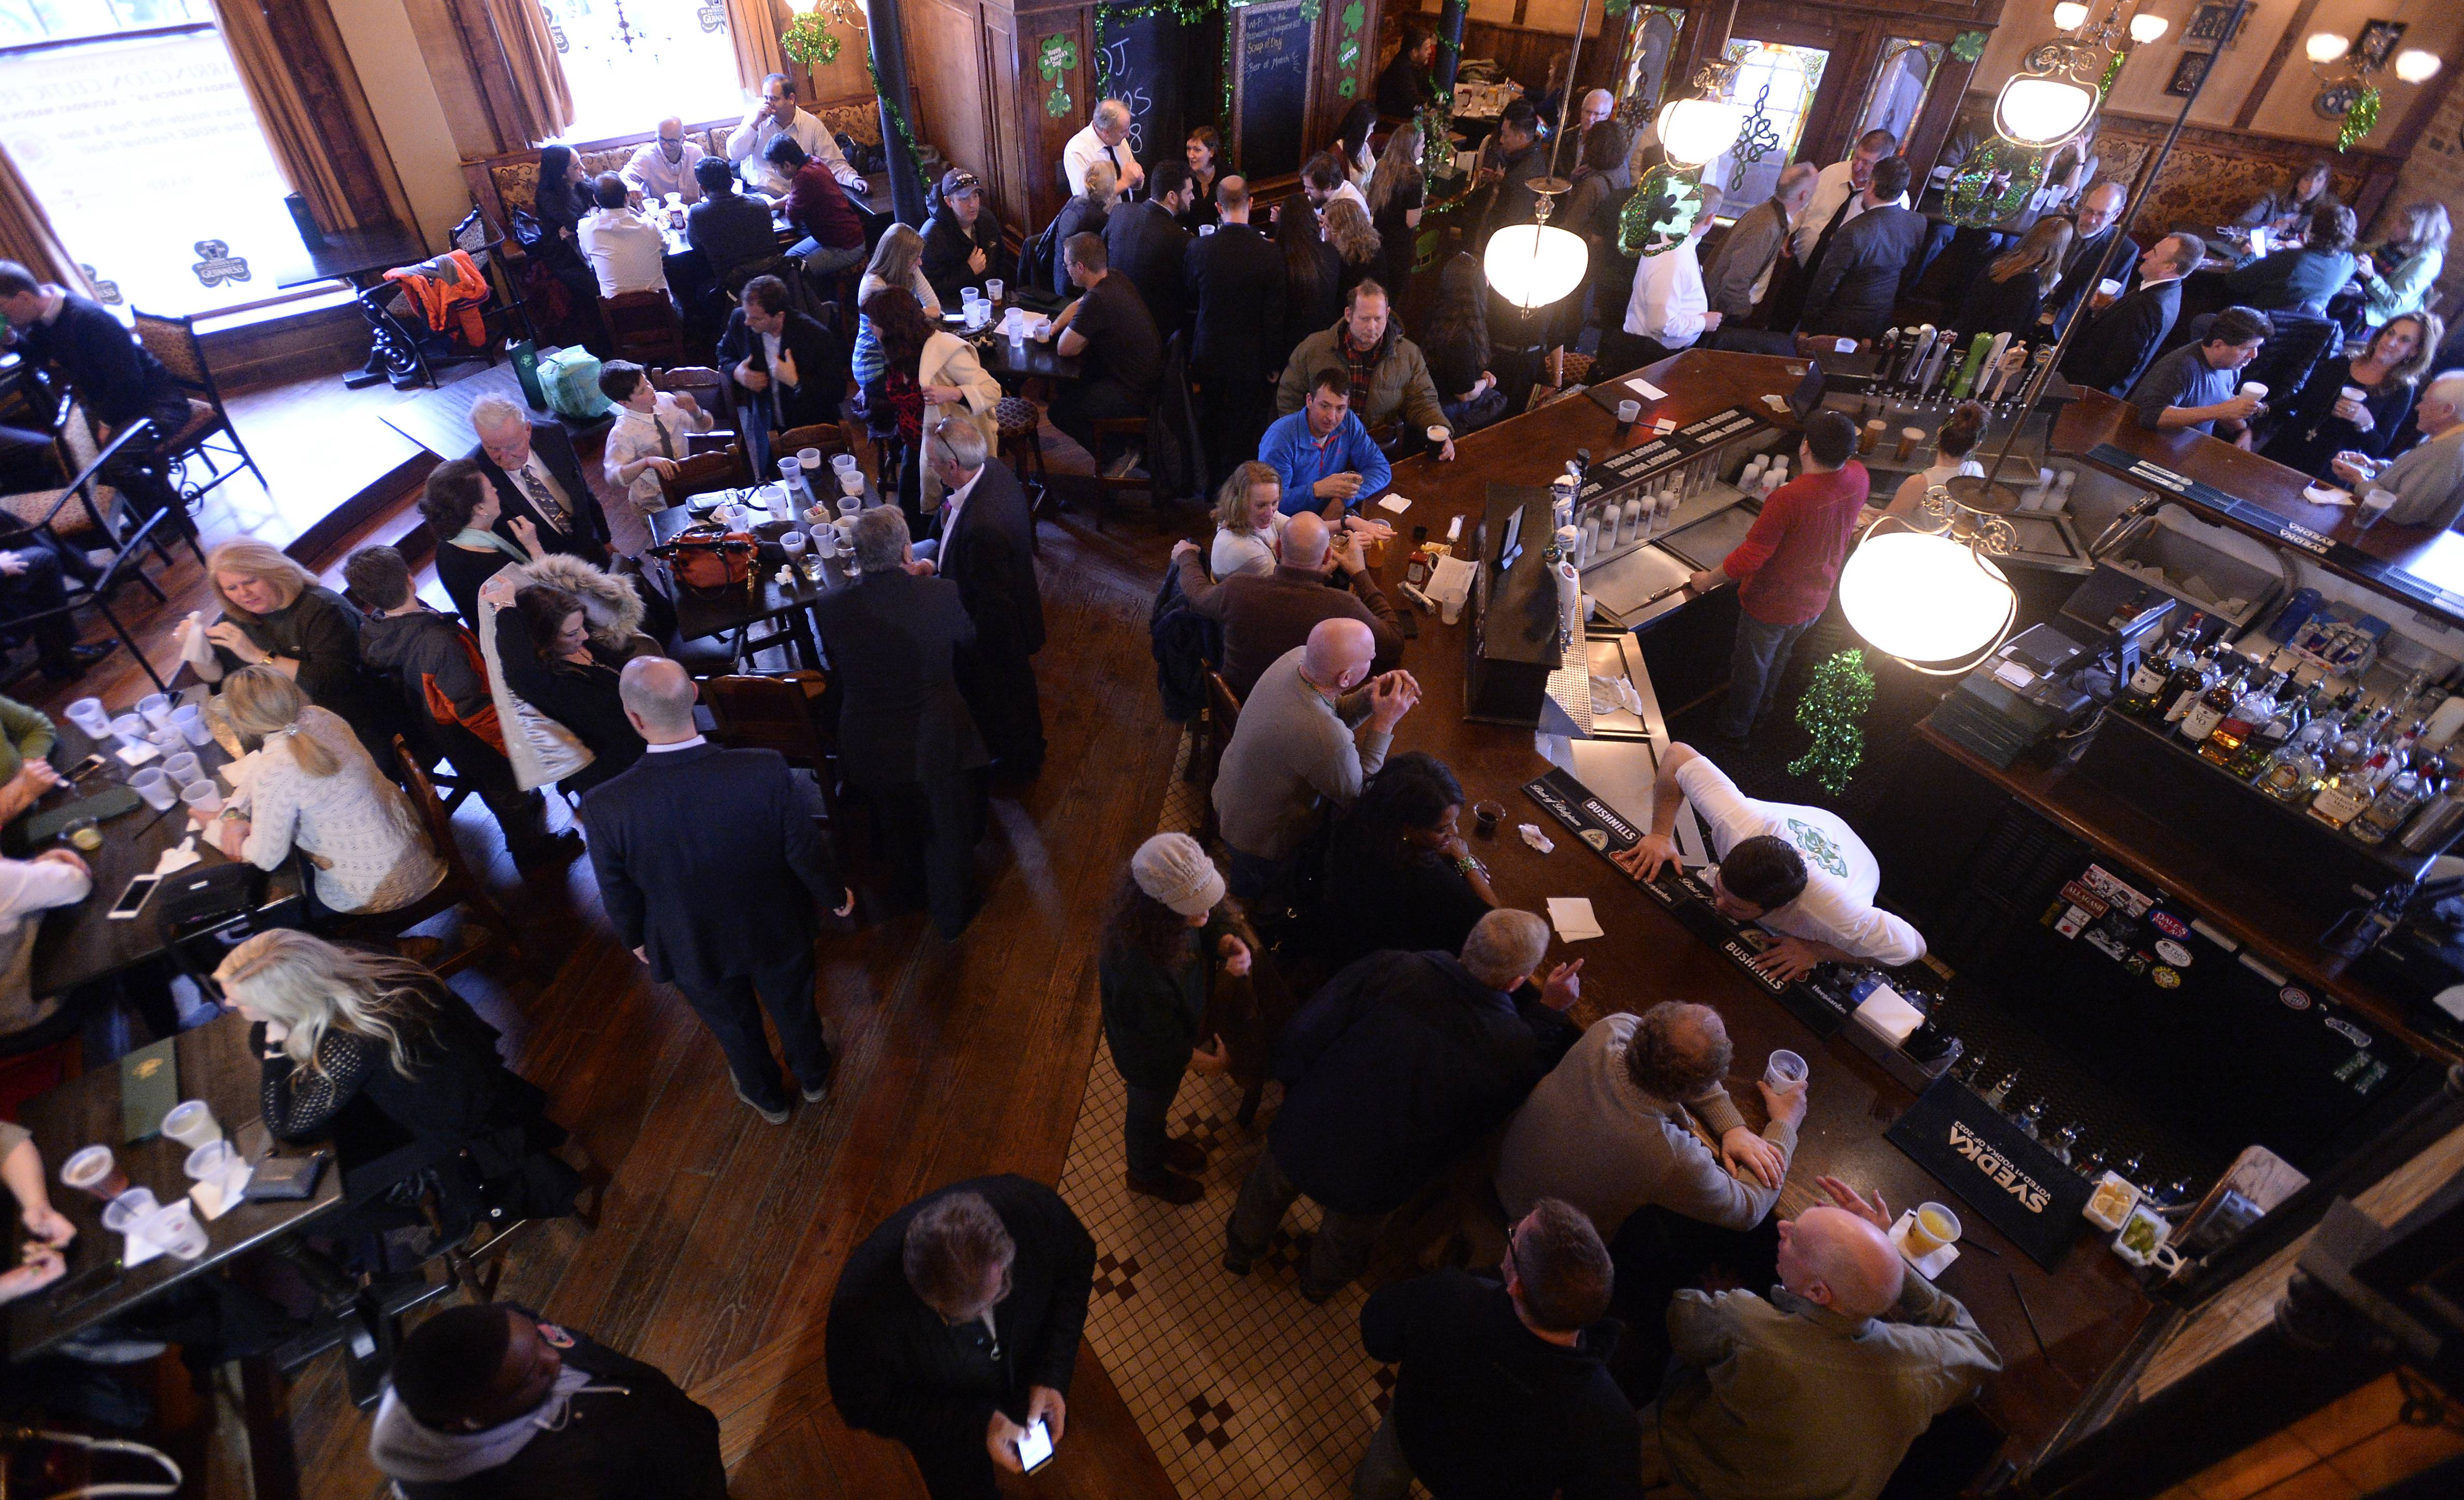 Beer, corned beef sandwiches and fish and chips were on everybody's minds Thursday at McGonigal's Pub in Barrington.